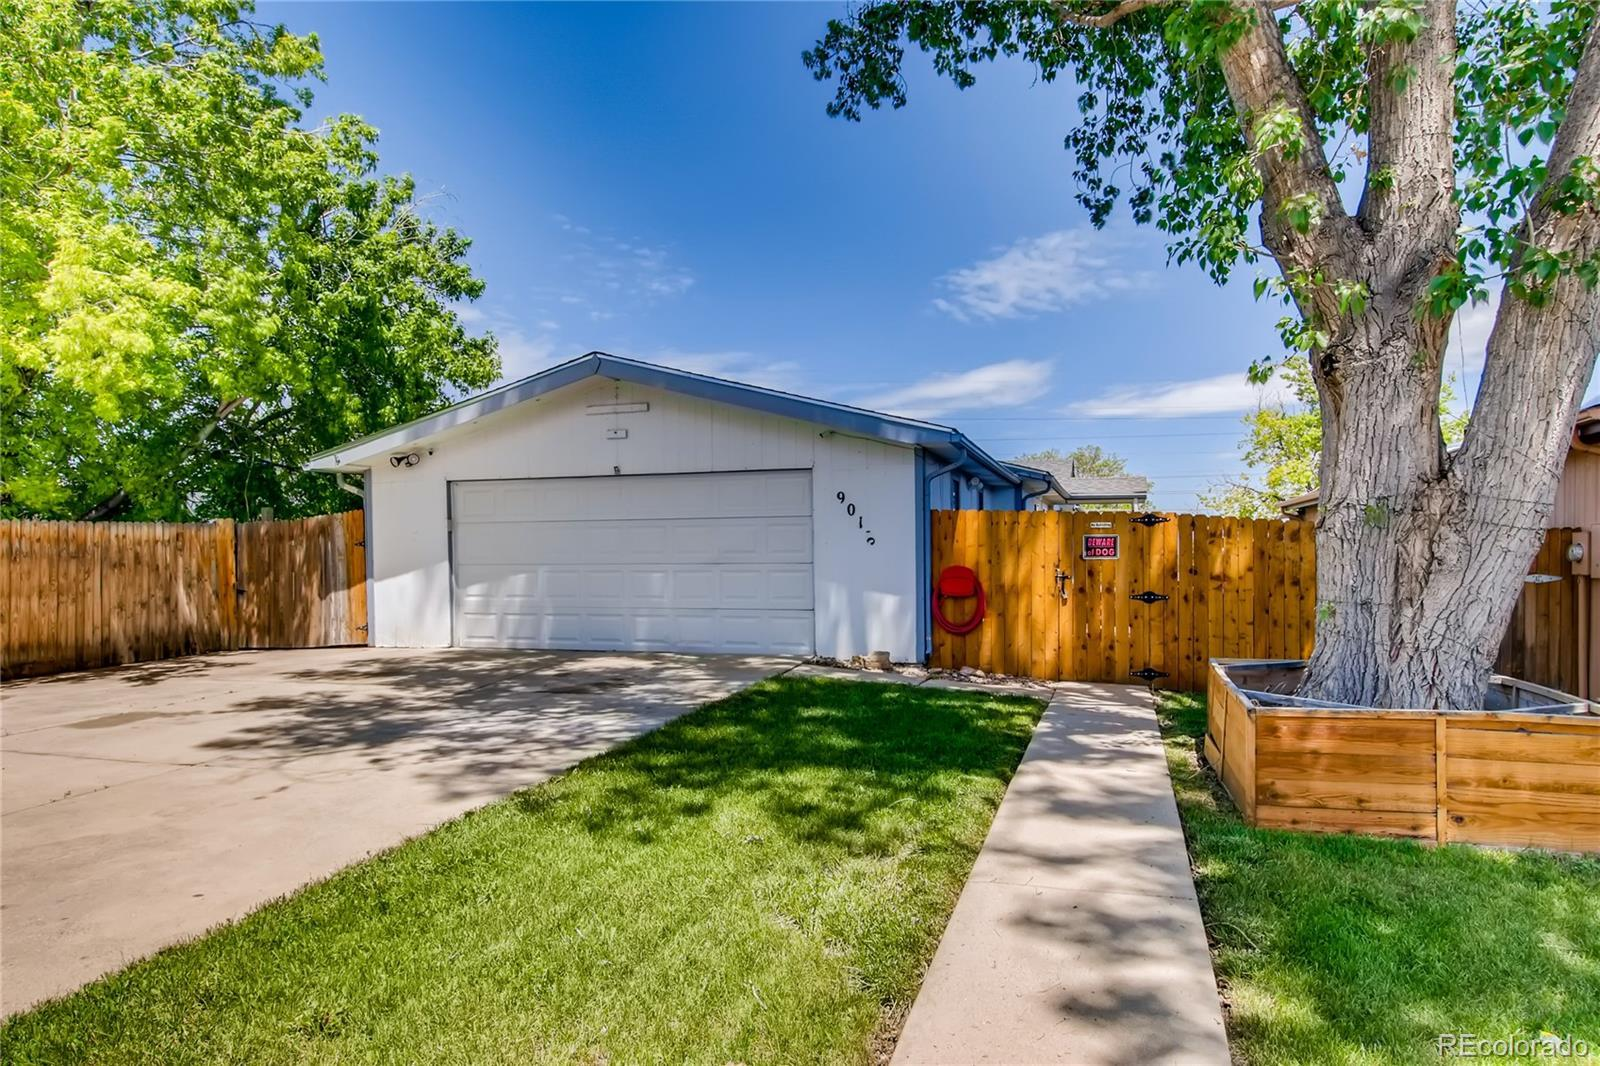 9016 Fayette Street, Federal Heights, CO 80260 - #: 3180247